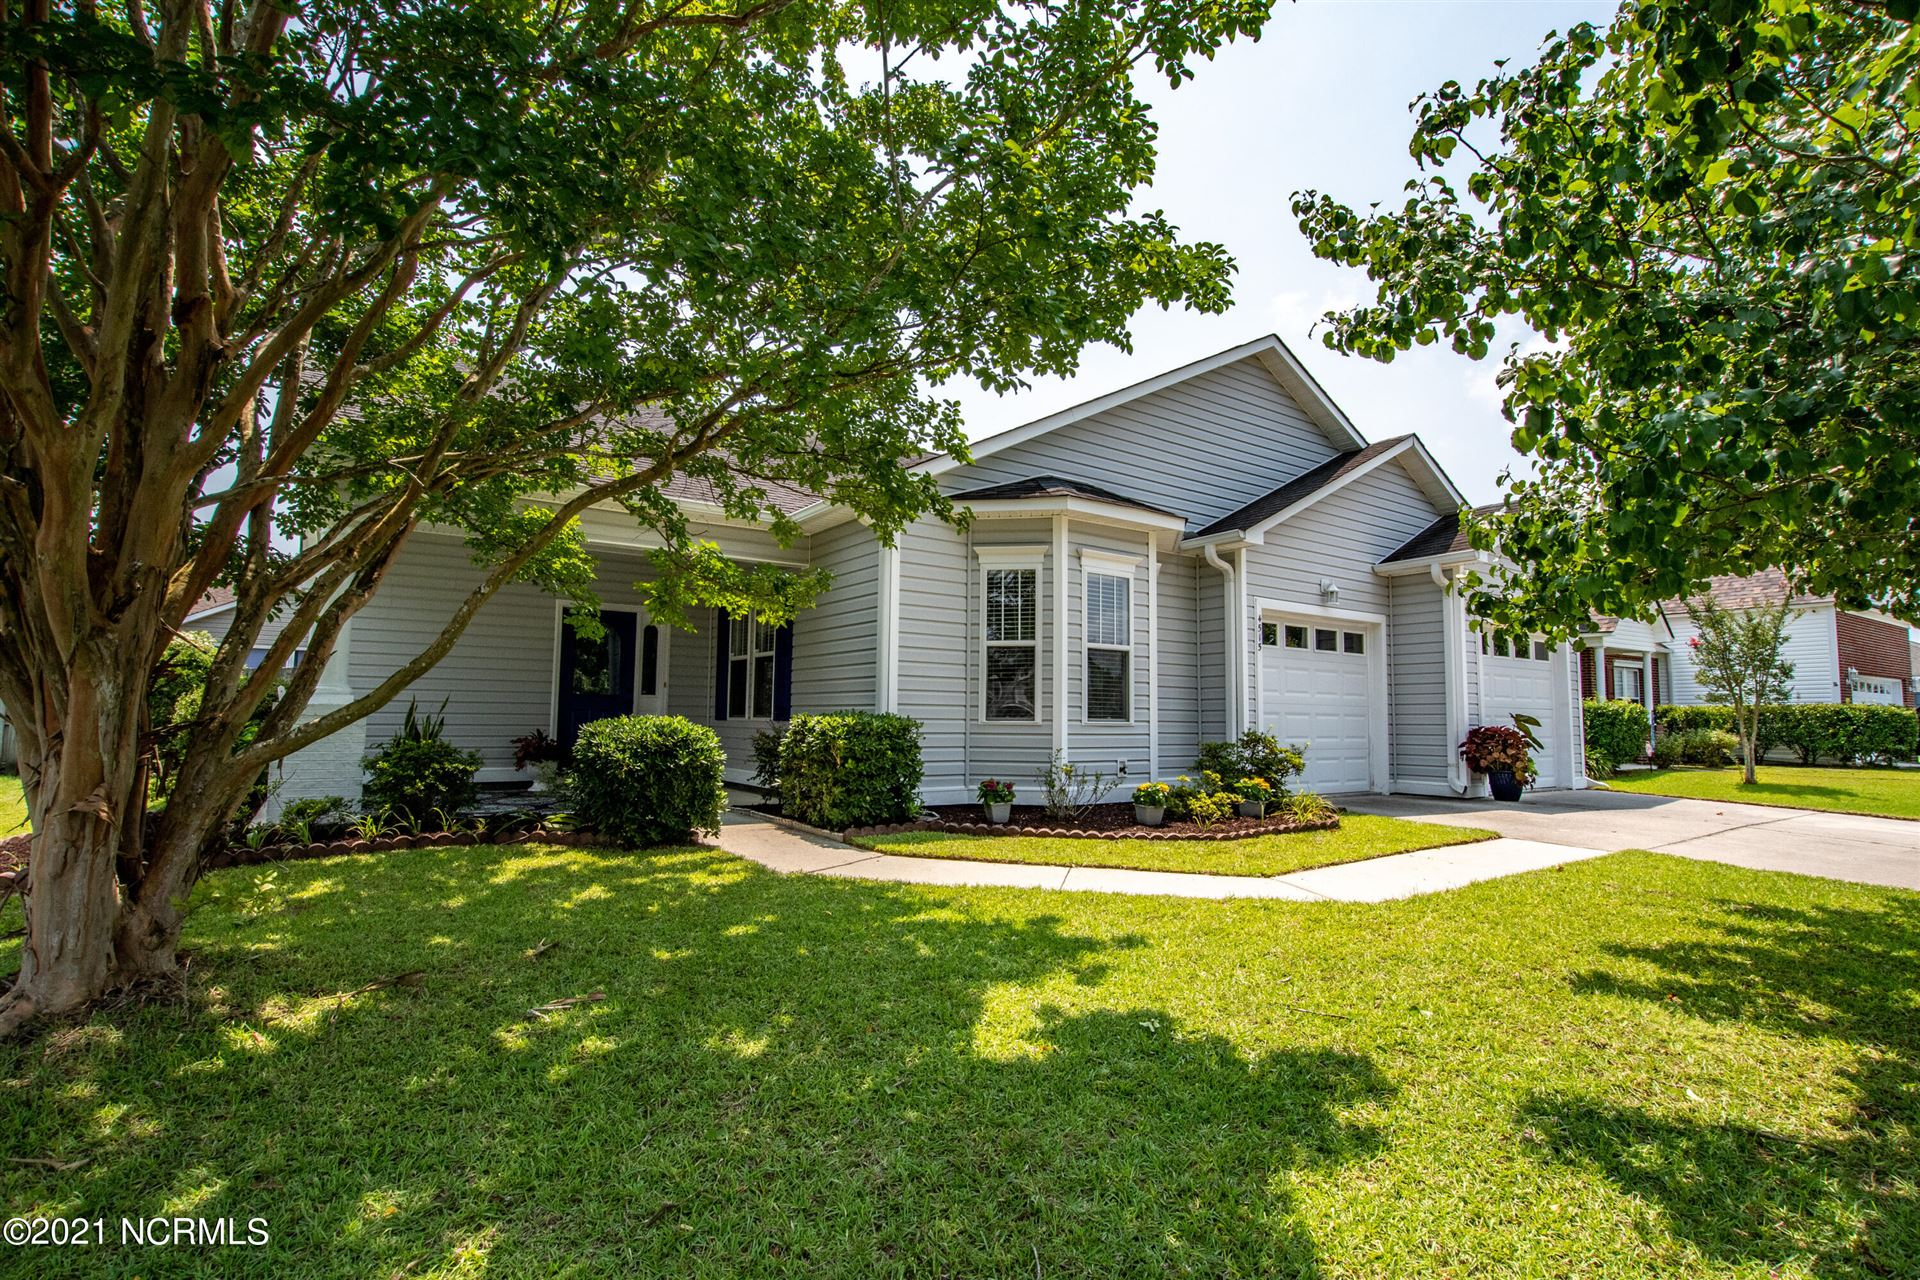 Photo for 4515 Whiteweld Terrace, Wilmington, NC 28412 (MLS # 100283810)